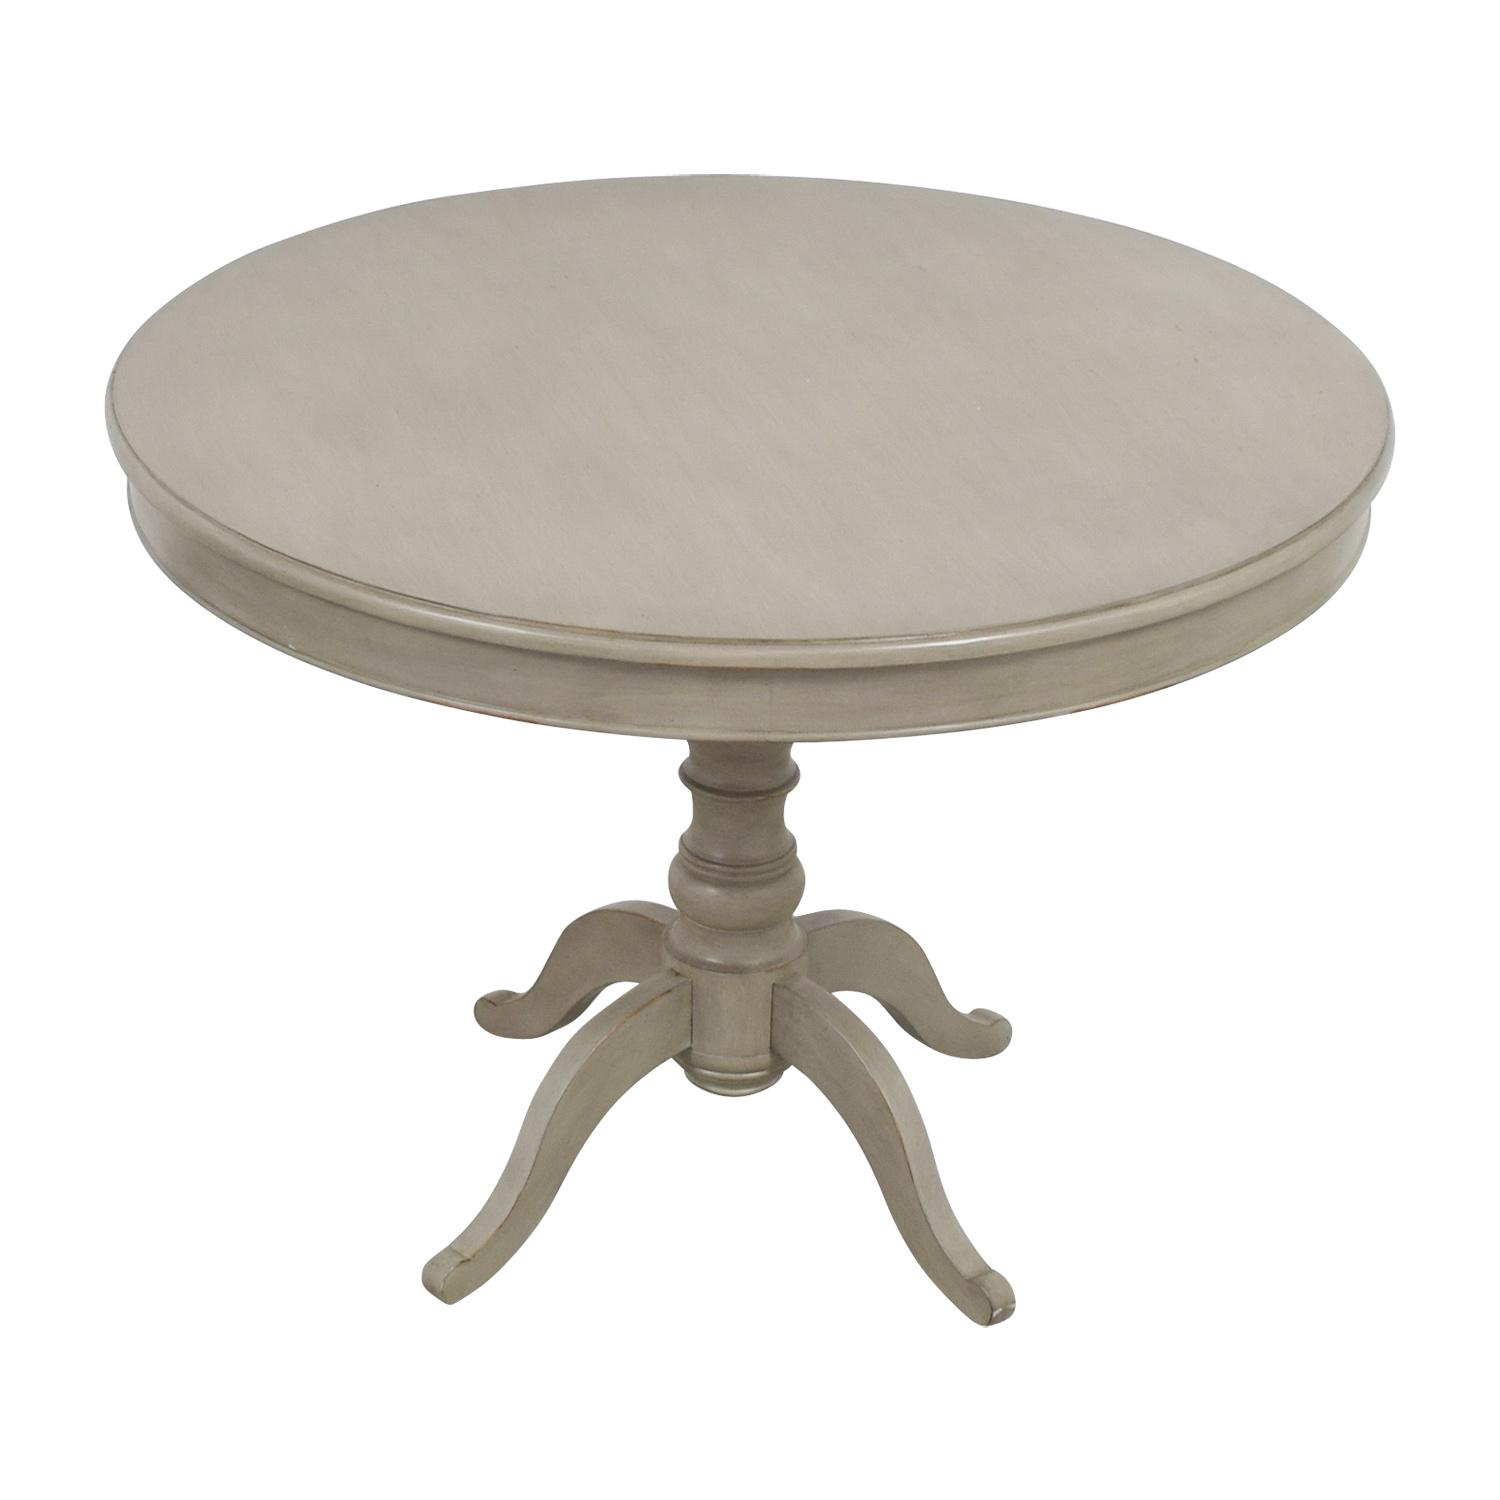 Ballard Ballard Design Round Gray Table discount